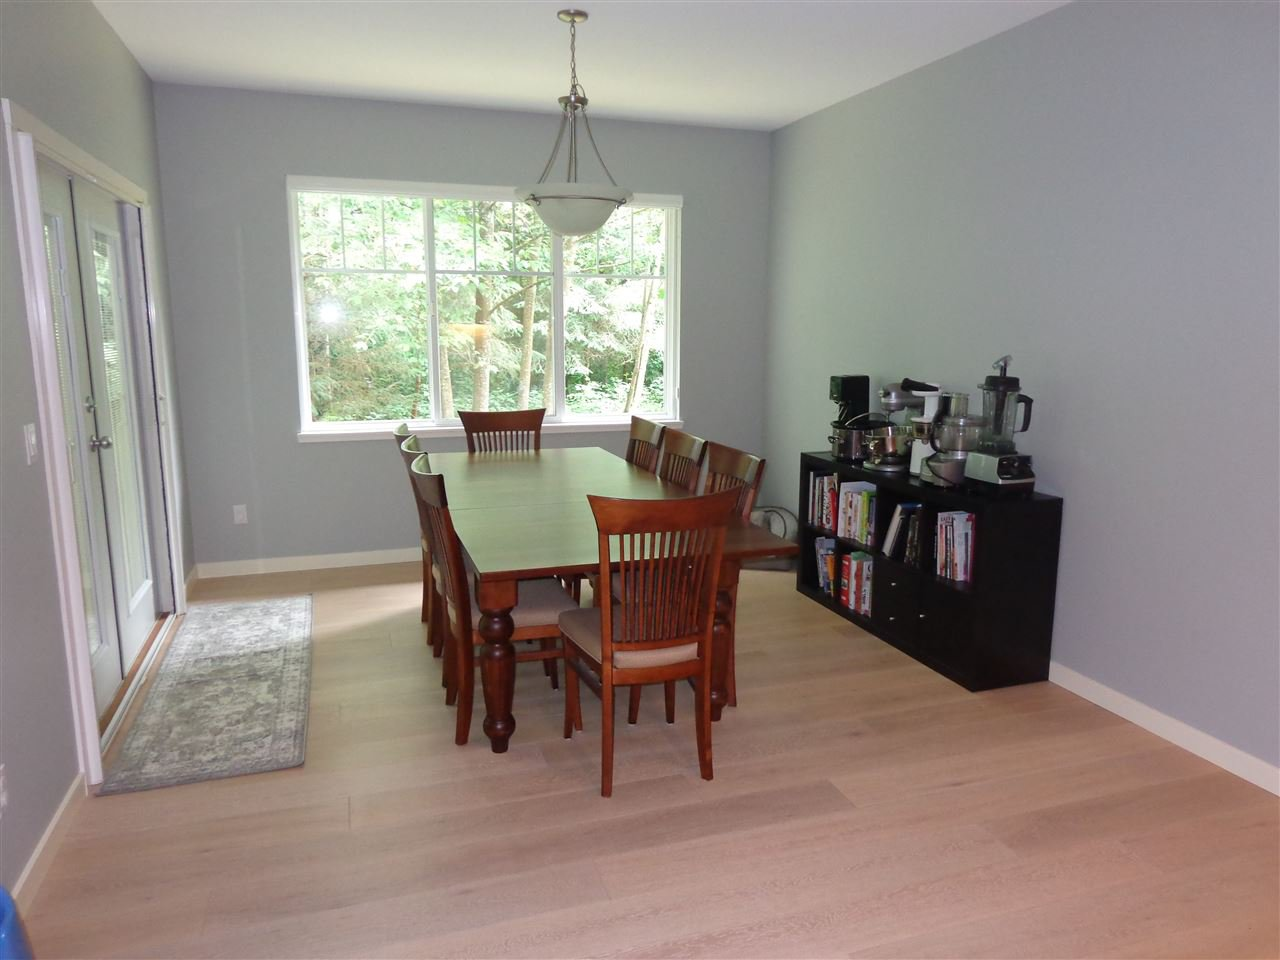 """Photo 9: Photos: 10 8588 168A Street in Surrey: Fleetwood Tynehead Townhouse for sale in """"The Brookstone"""" : MLS®# R2384013"""